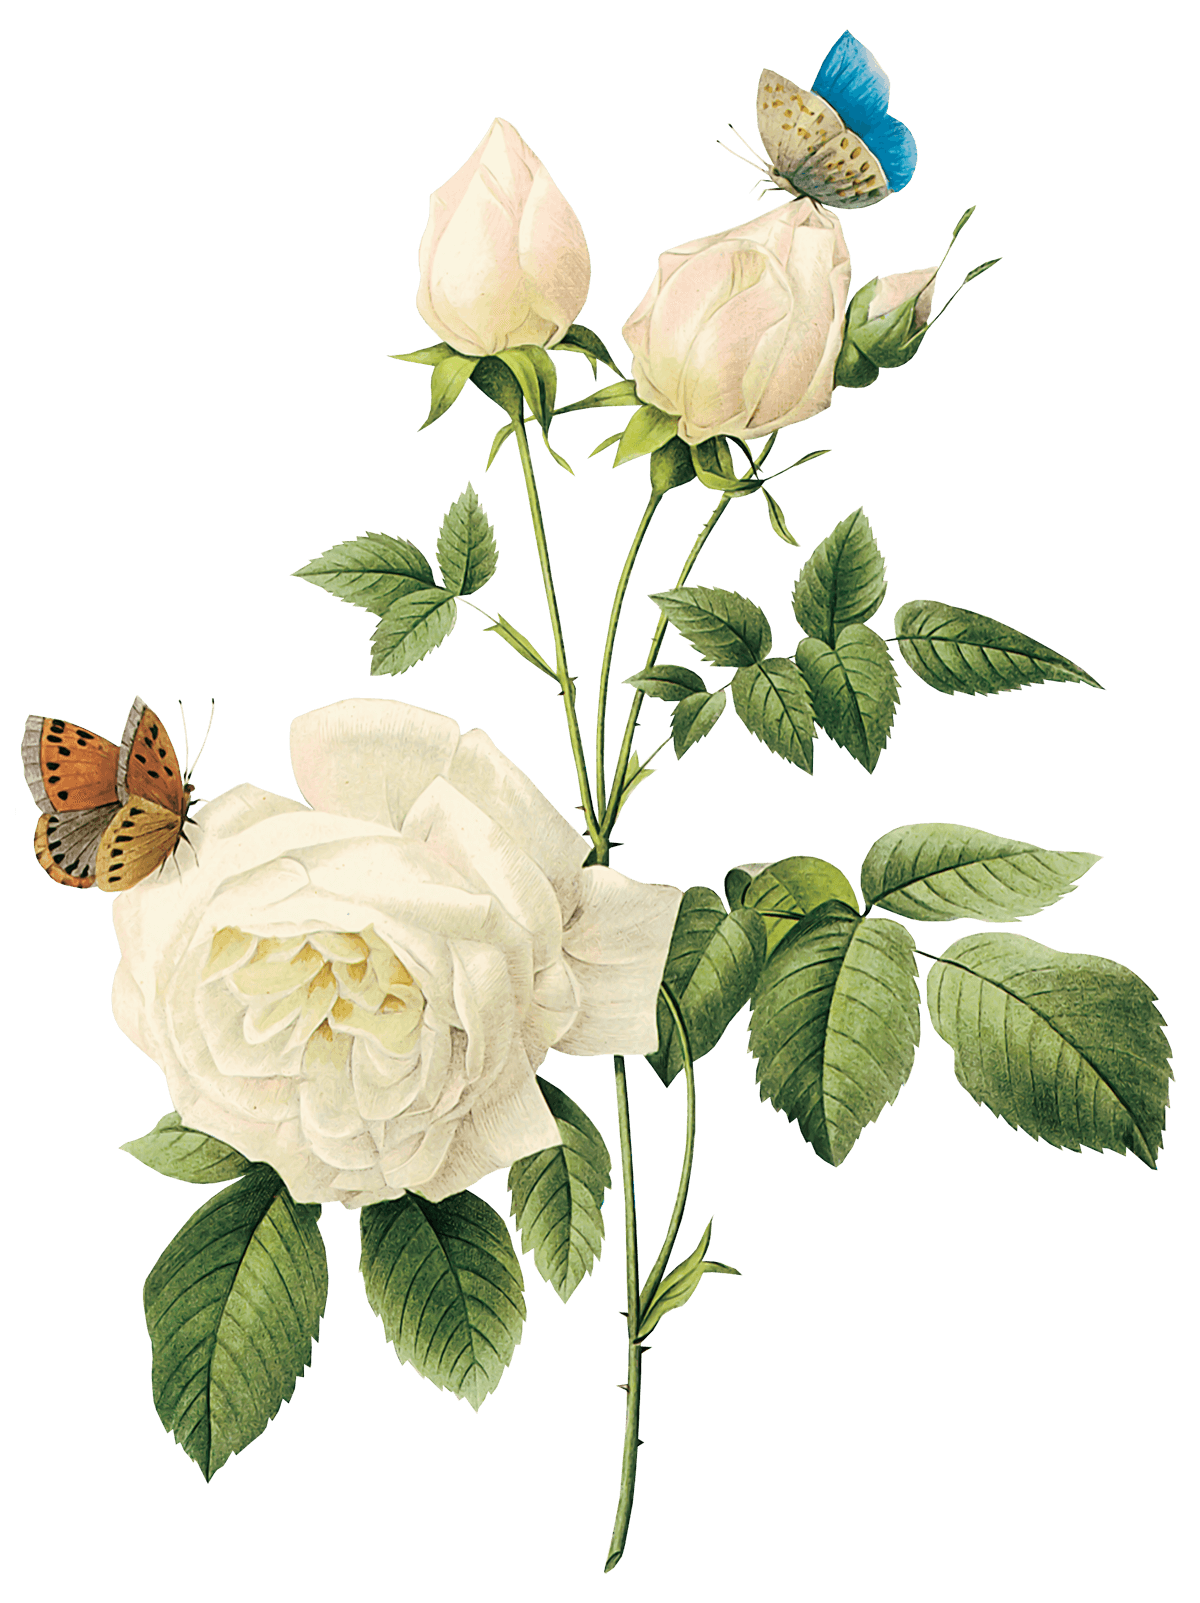 download white rose png image flower white rose png #19118